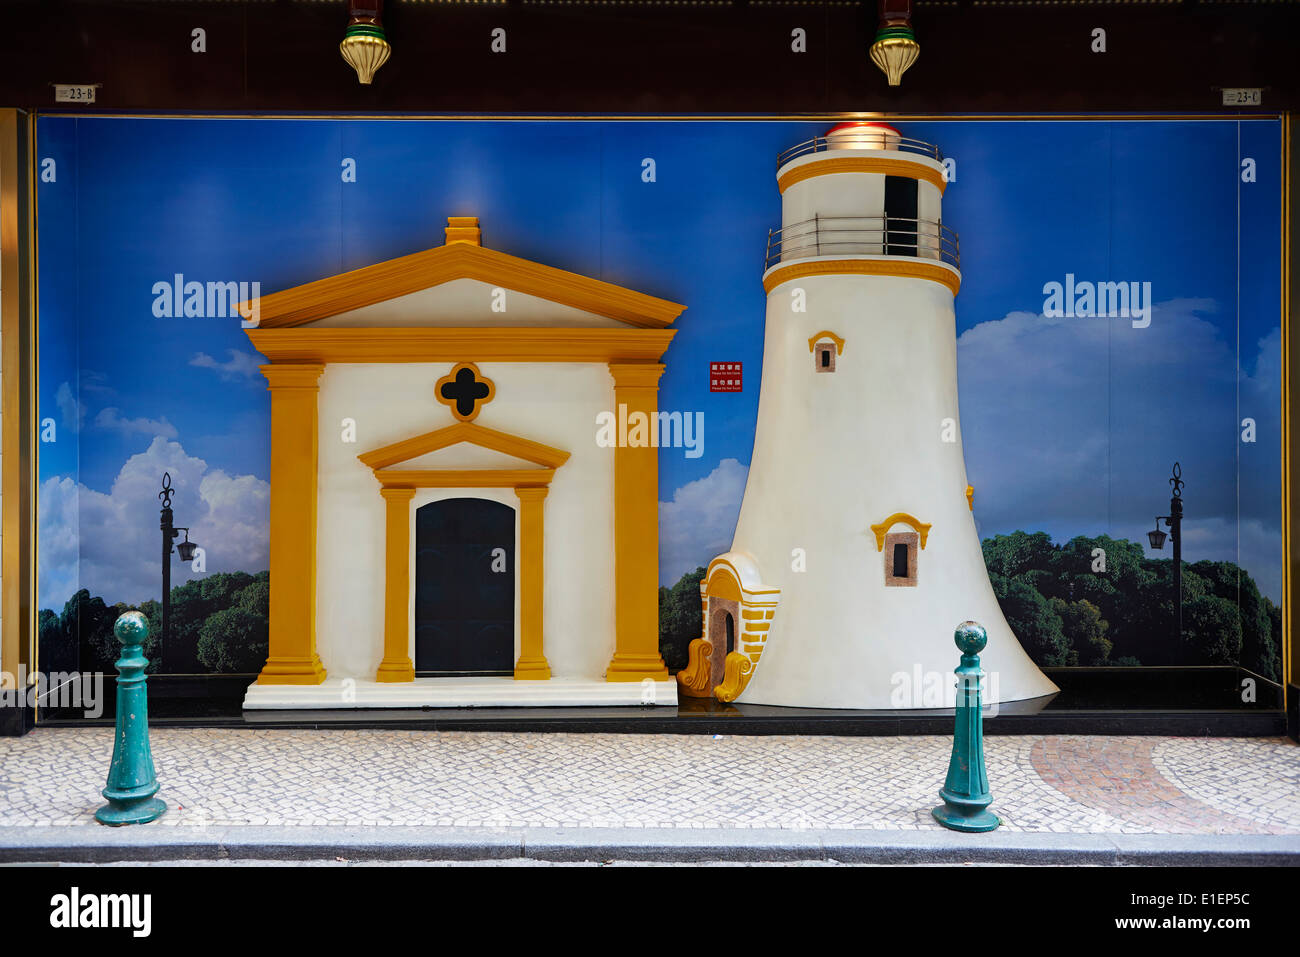 China, Macau, Calcada do Barro, Guia lighthouse - Stock Image